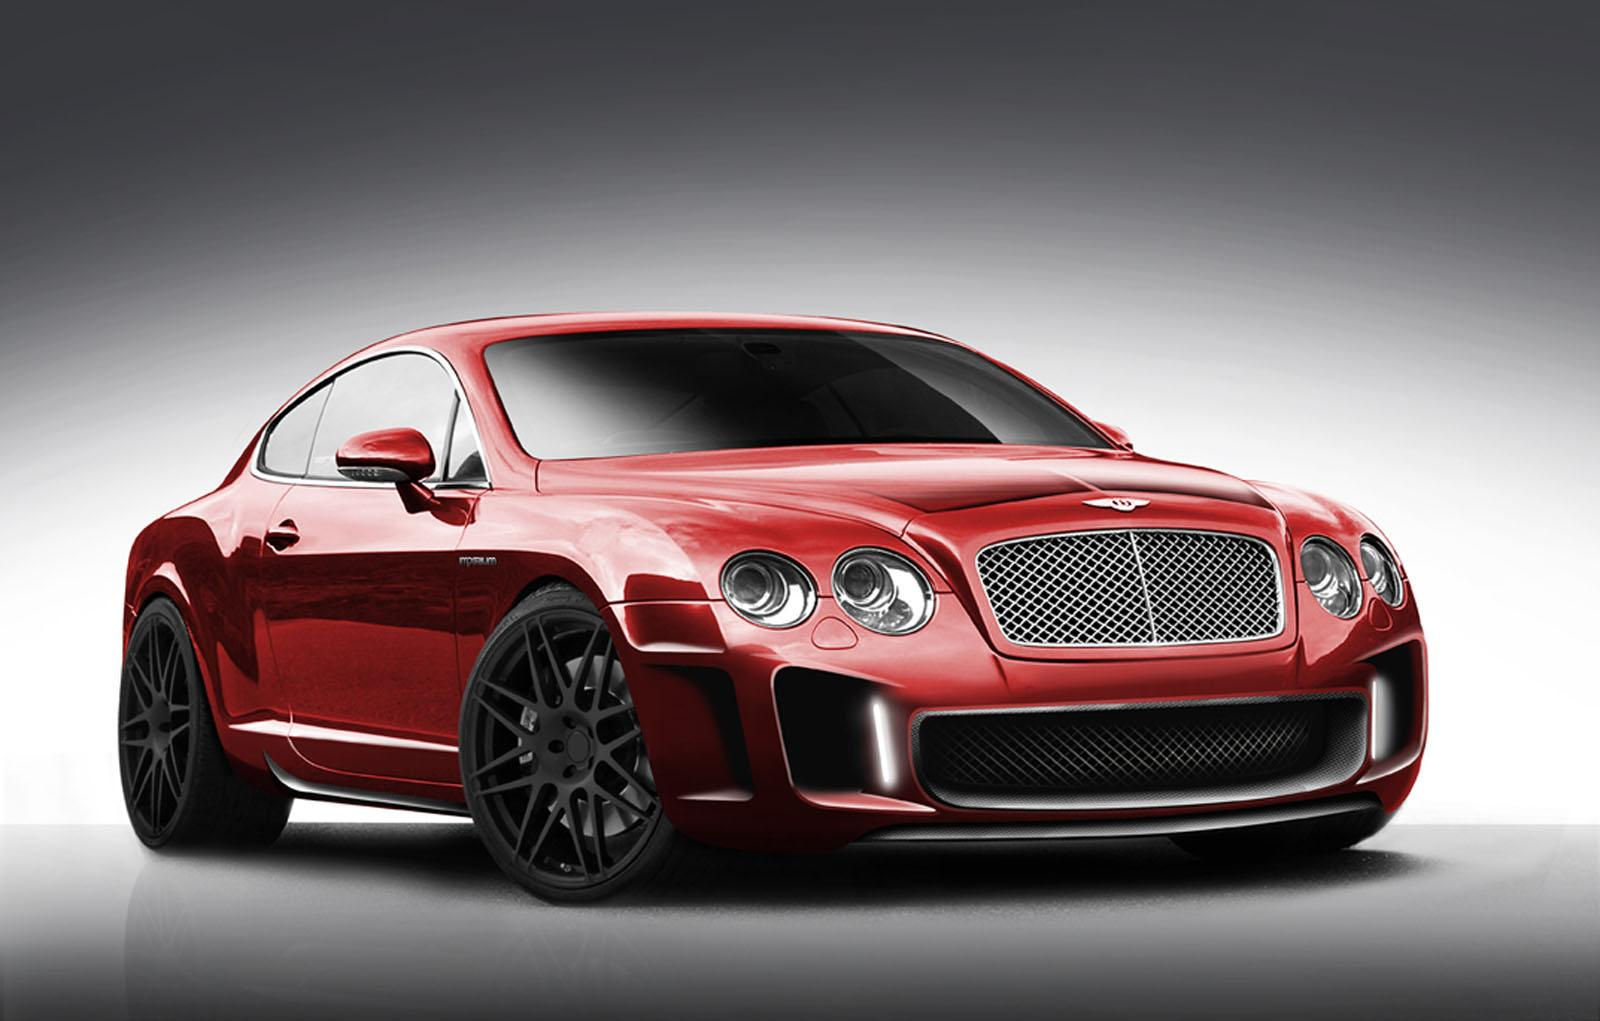 Bentley-Continental-GT-Concept-Image-wallpaper-wp424044-1